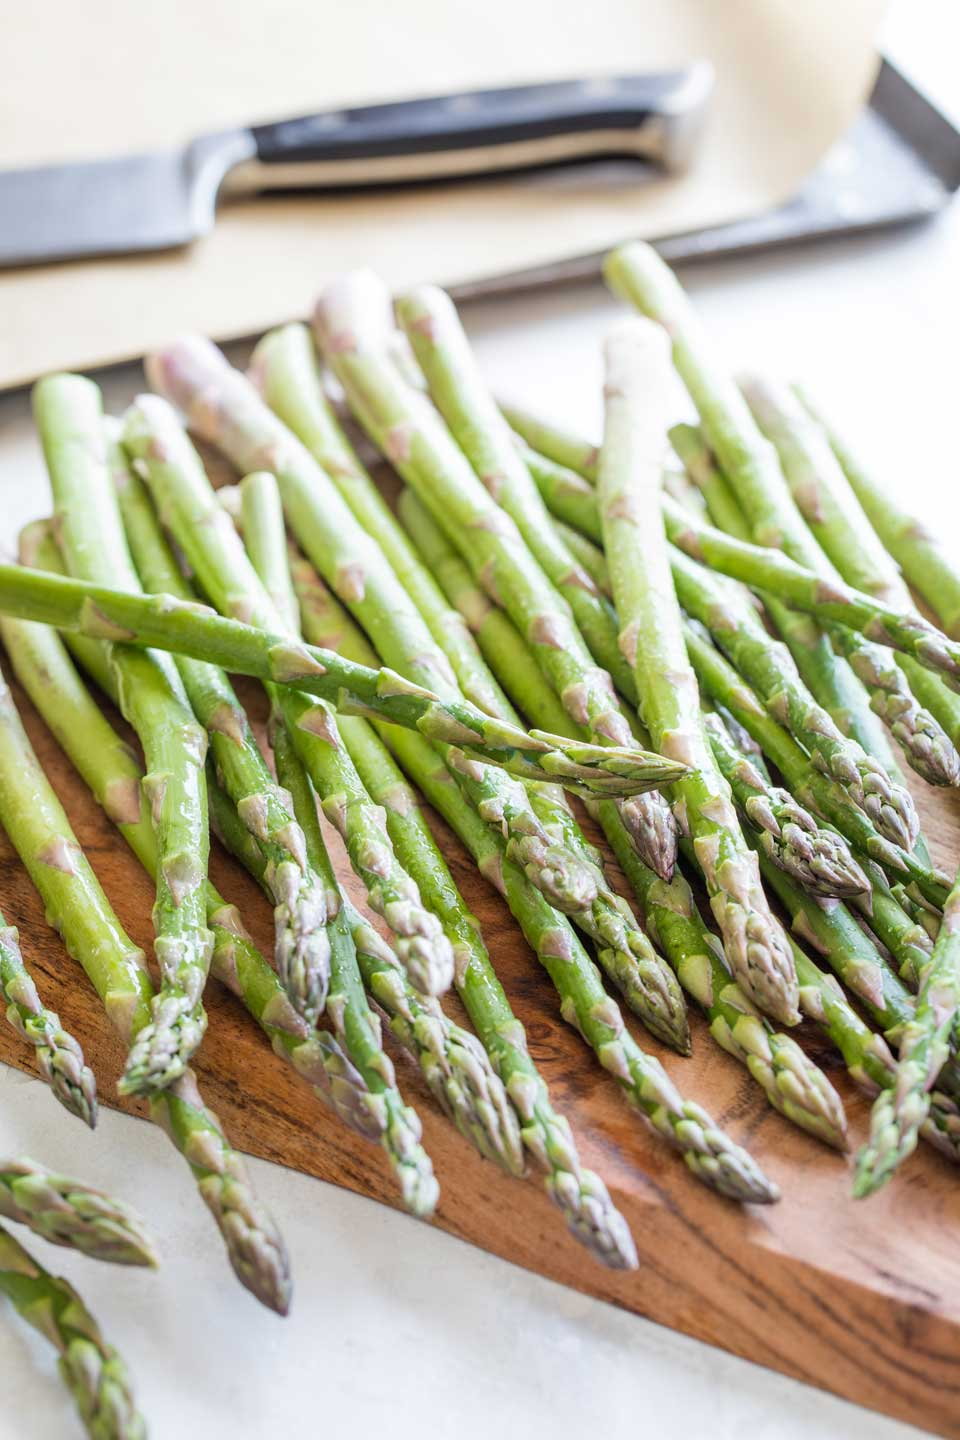 Pencil-width asparagus spears that are fresh and damp with water droplets, spilled across a cutting board.